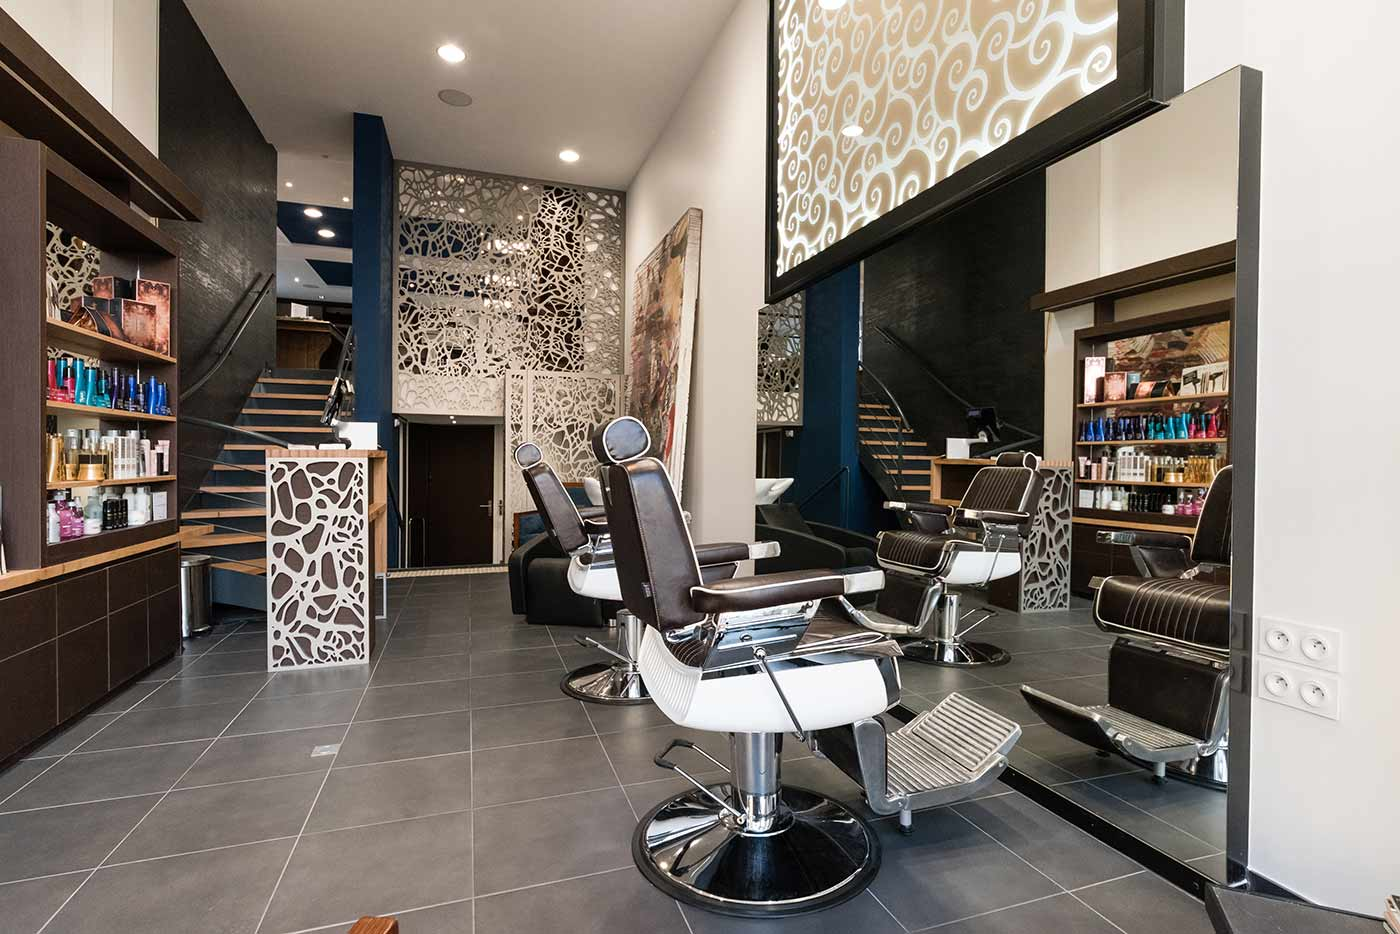 Modernisierung eines coiffeur salons dank perforierten for Salon de coiffure appartement